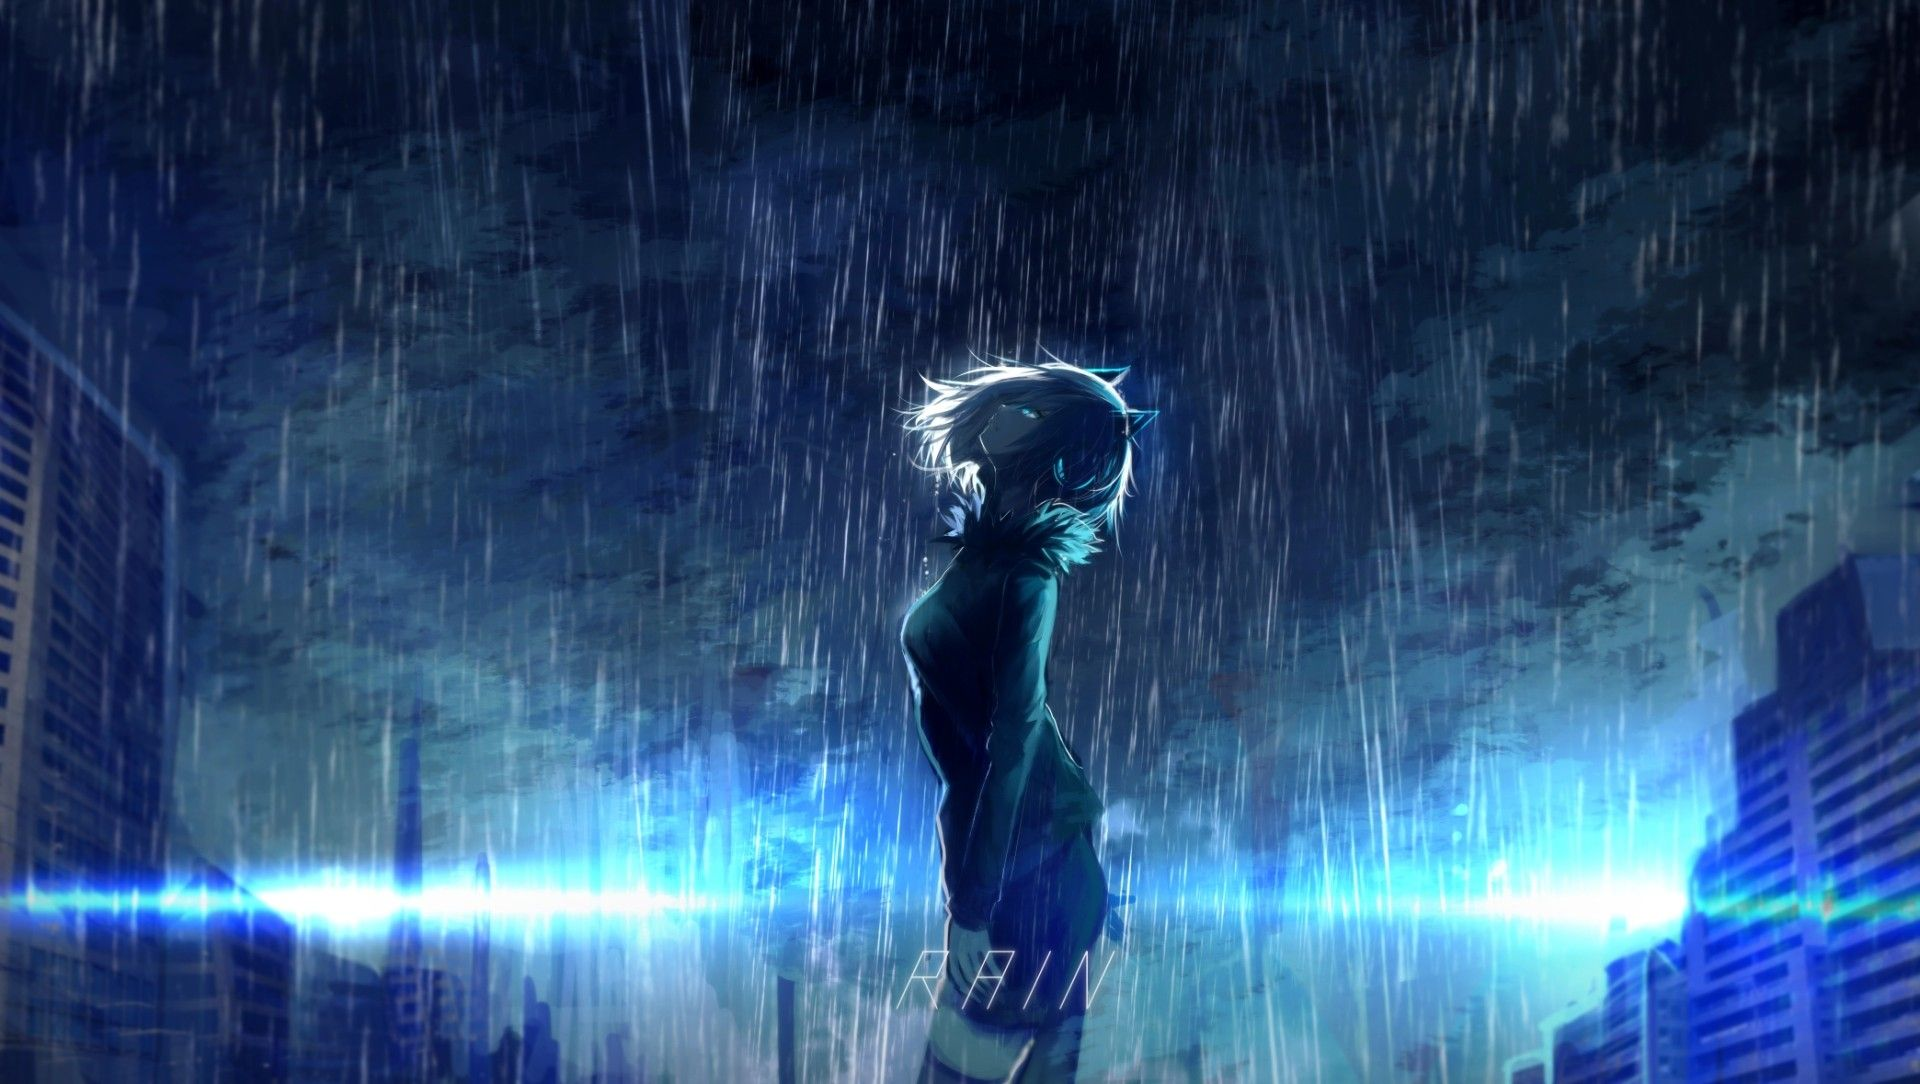 Pin By Sean On Rain On Me Anime Scenery Wallpaper Anime Scenery